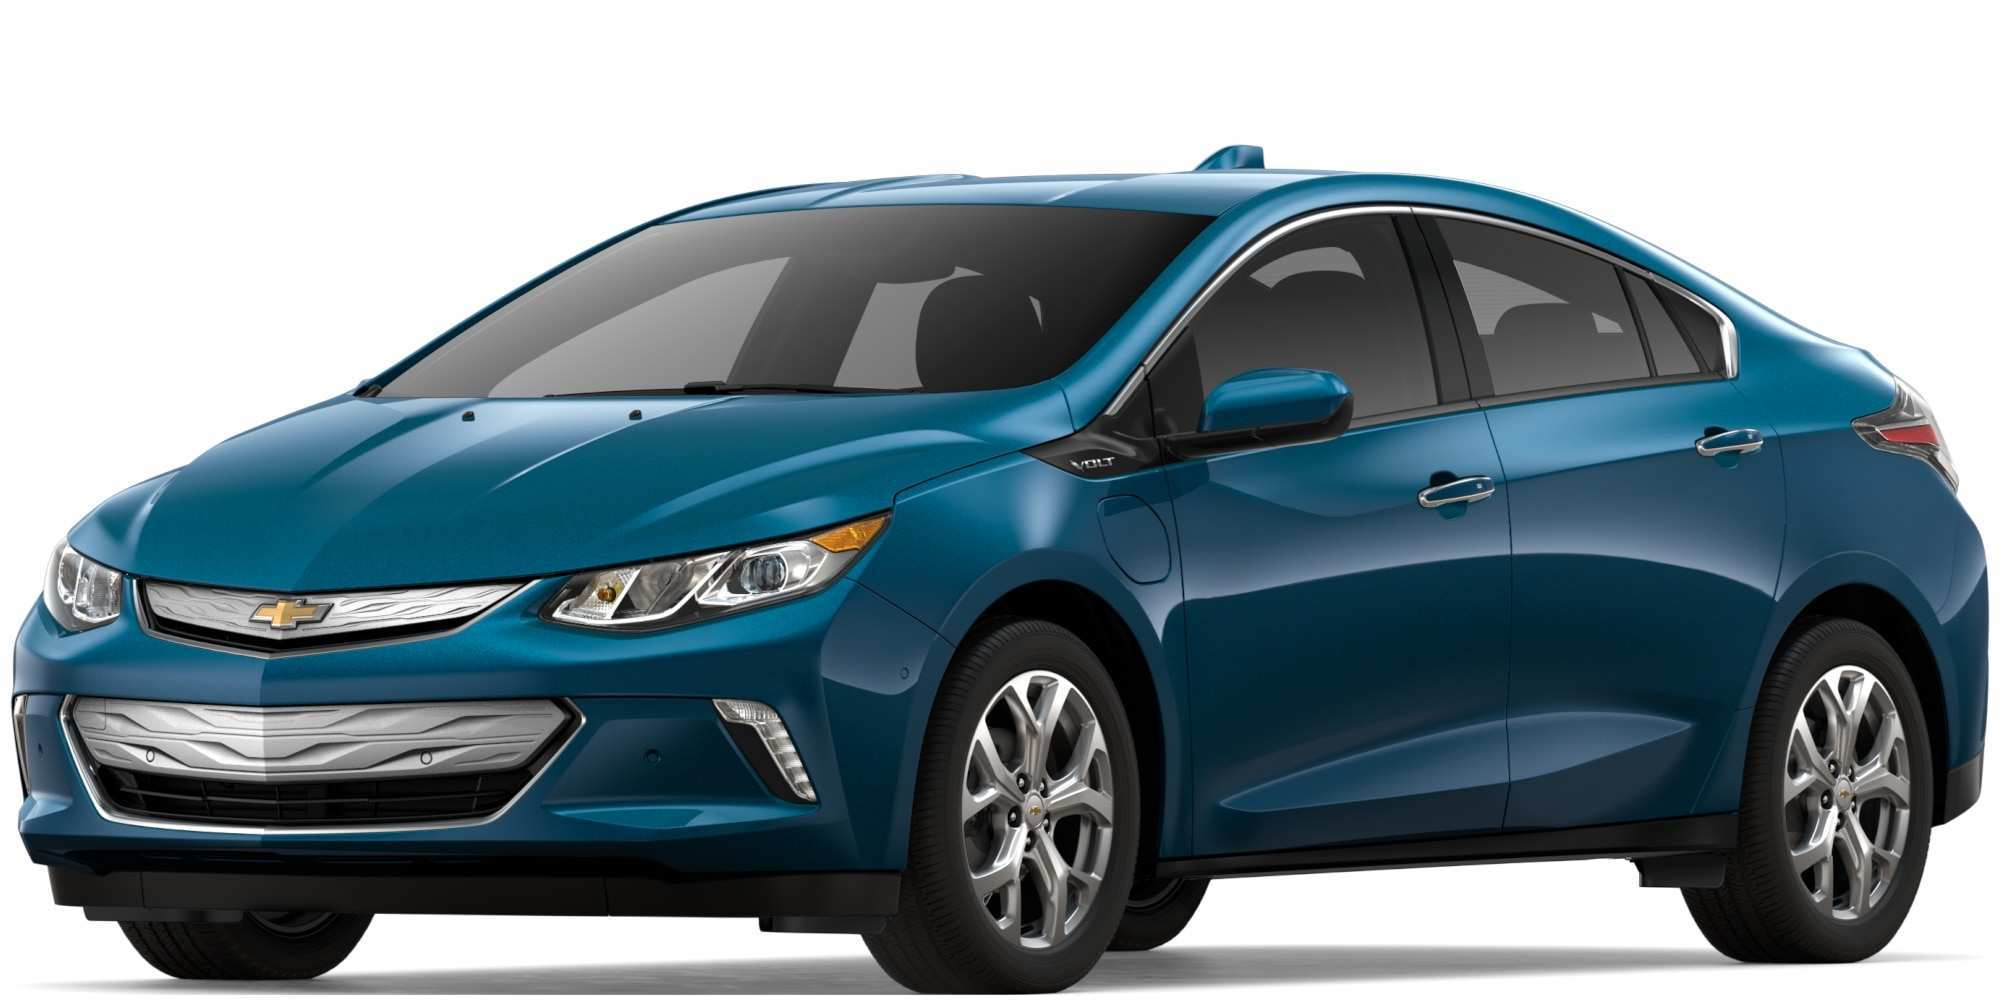 81 All New Chevrolet Volt Sport 2020 Model